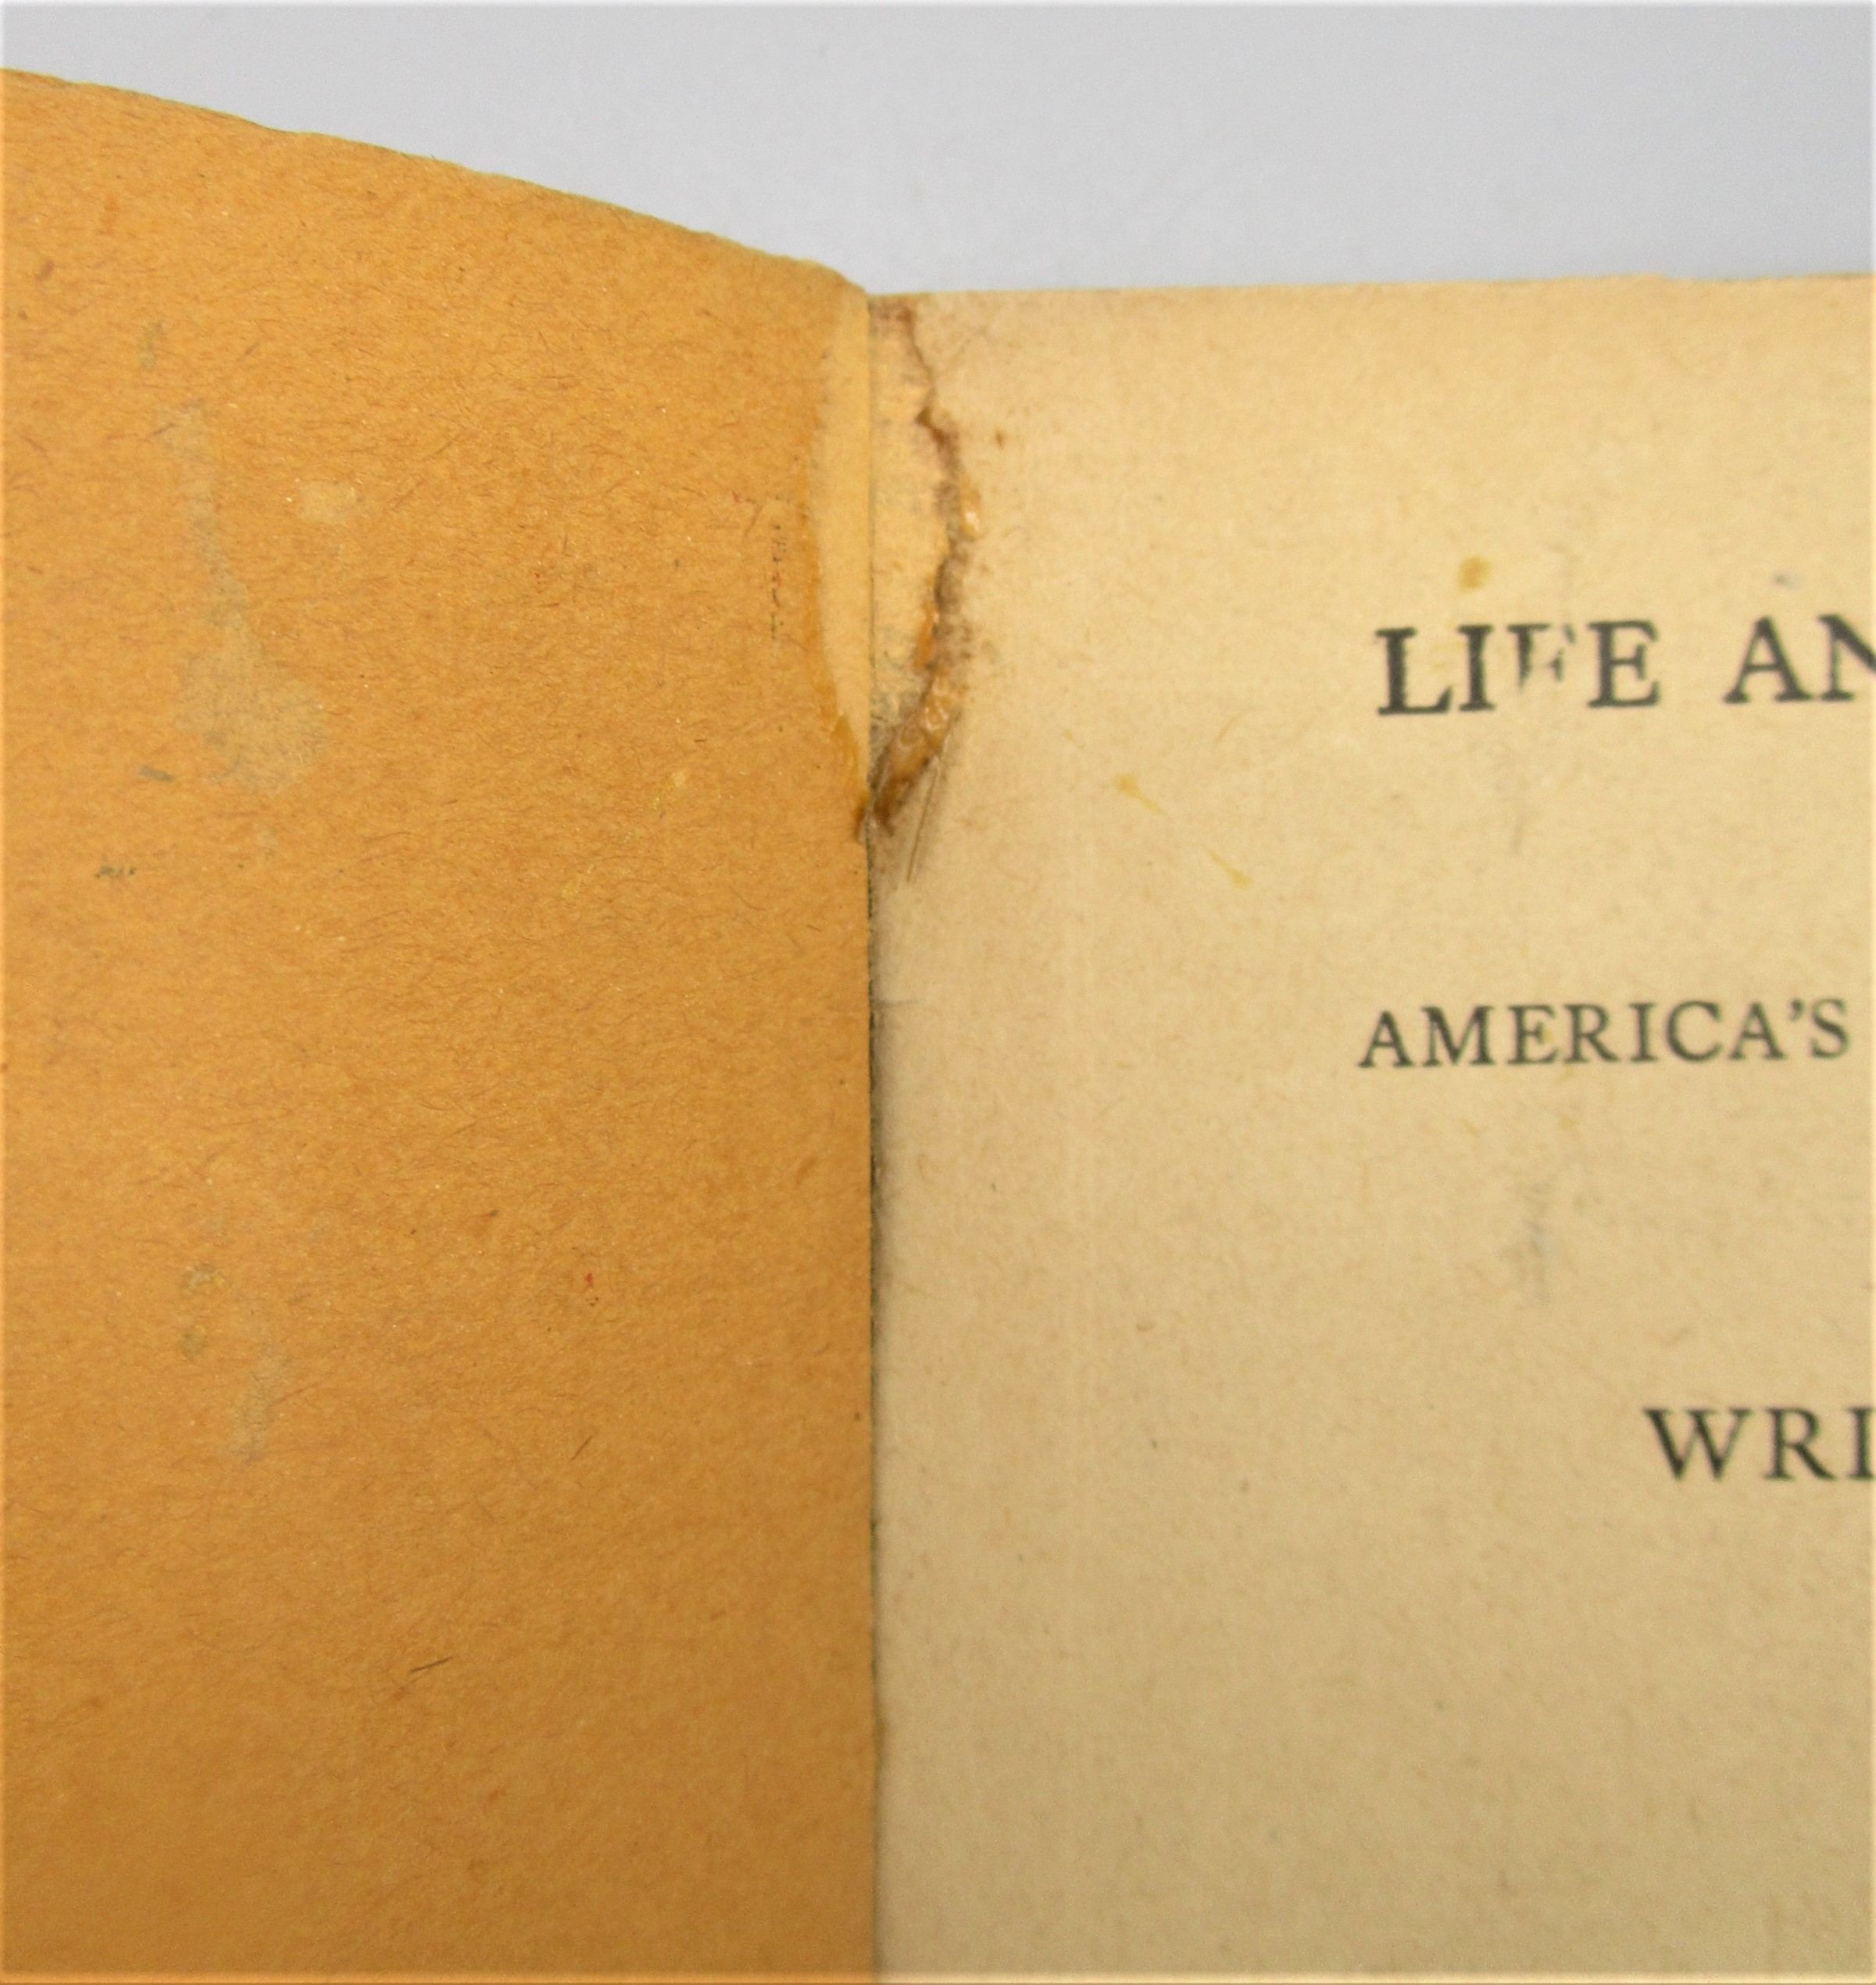 LIVE AND ADVENTURE OF A NO. 1, by Leon Ray Livingston - 1910 [4th Ed]